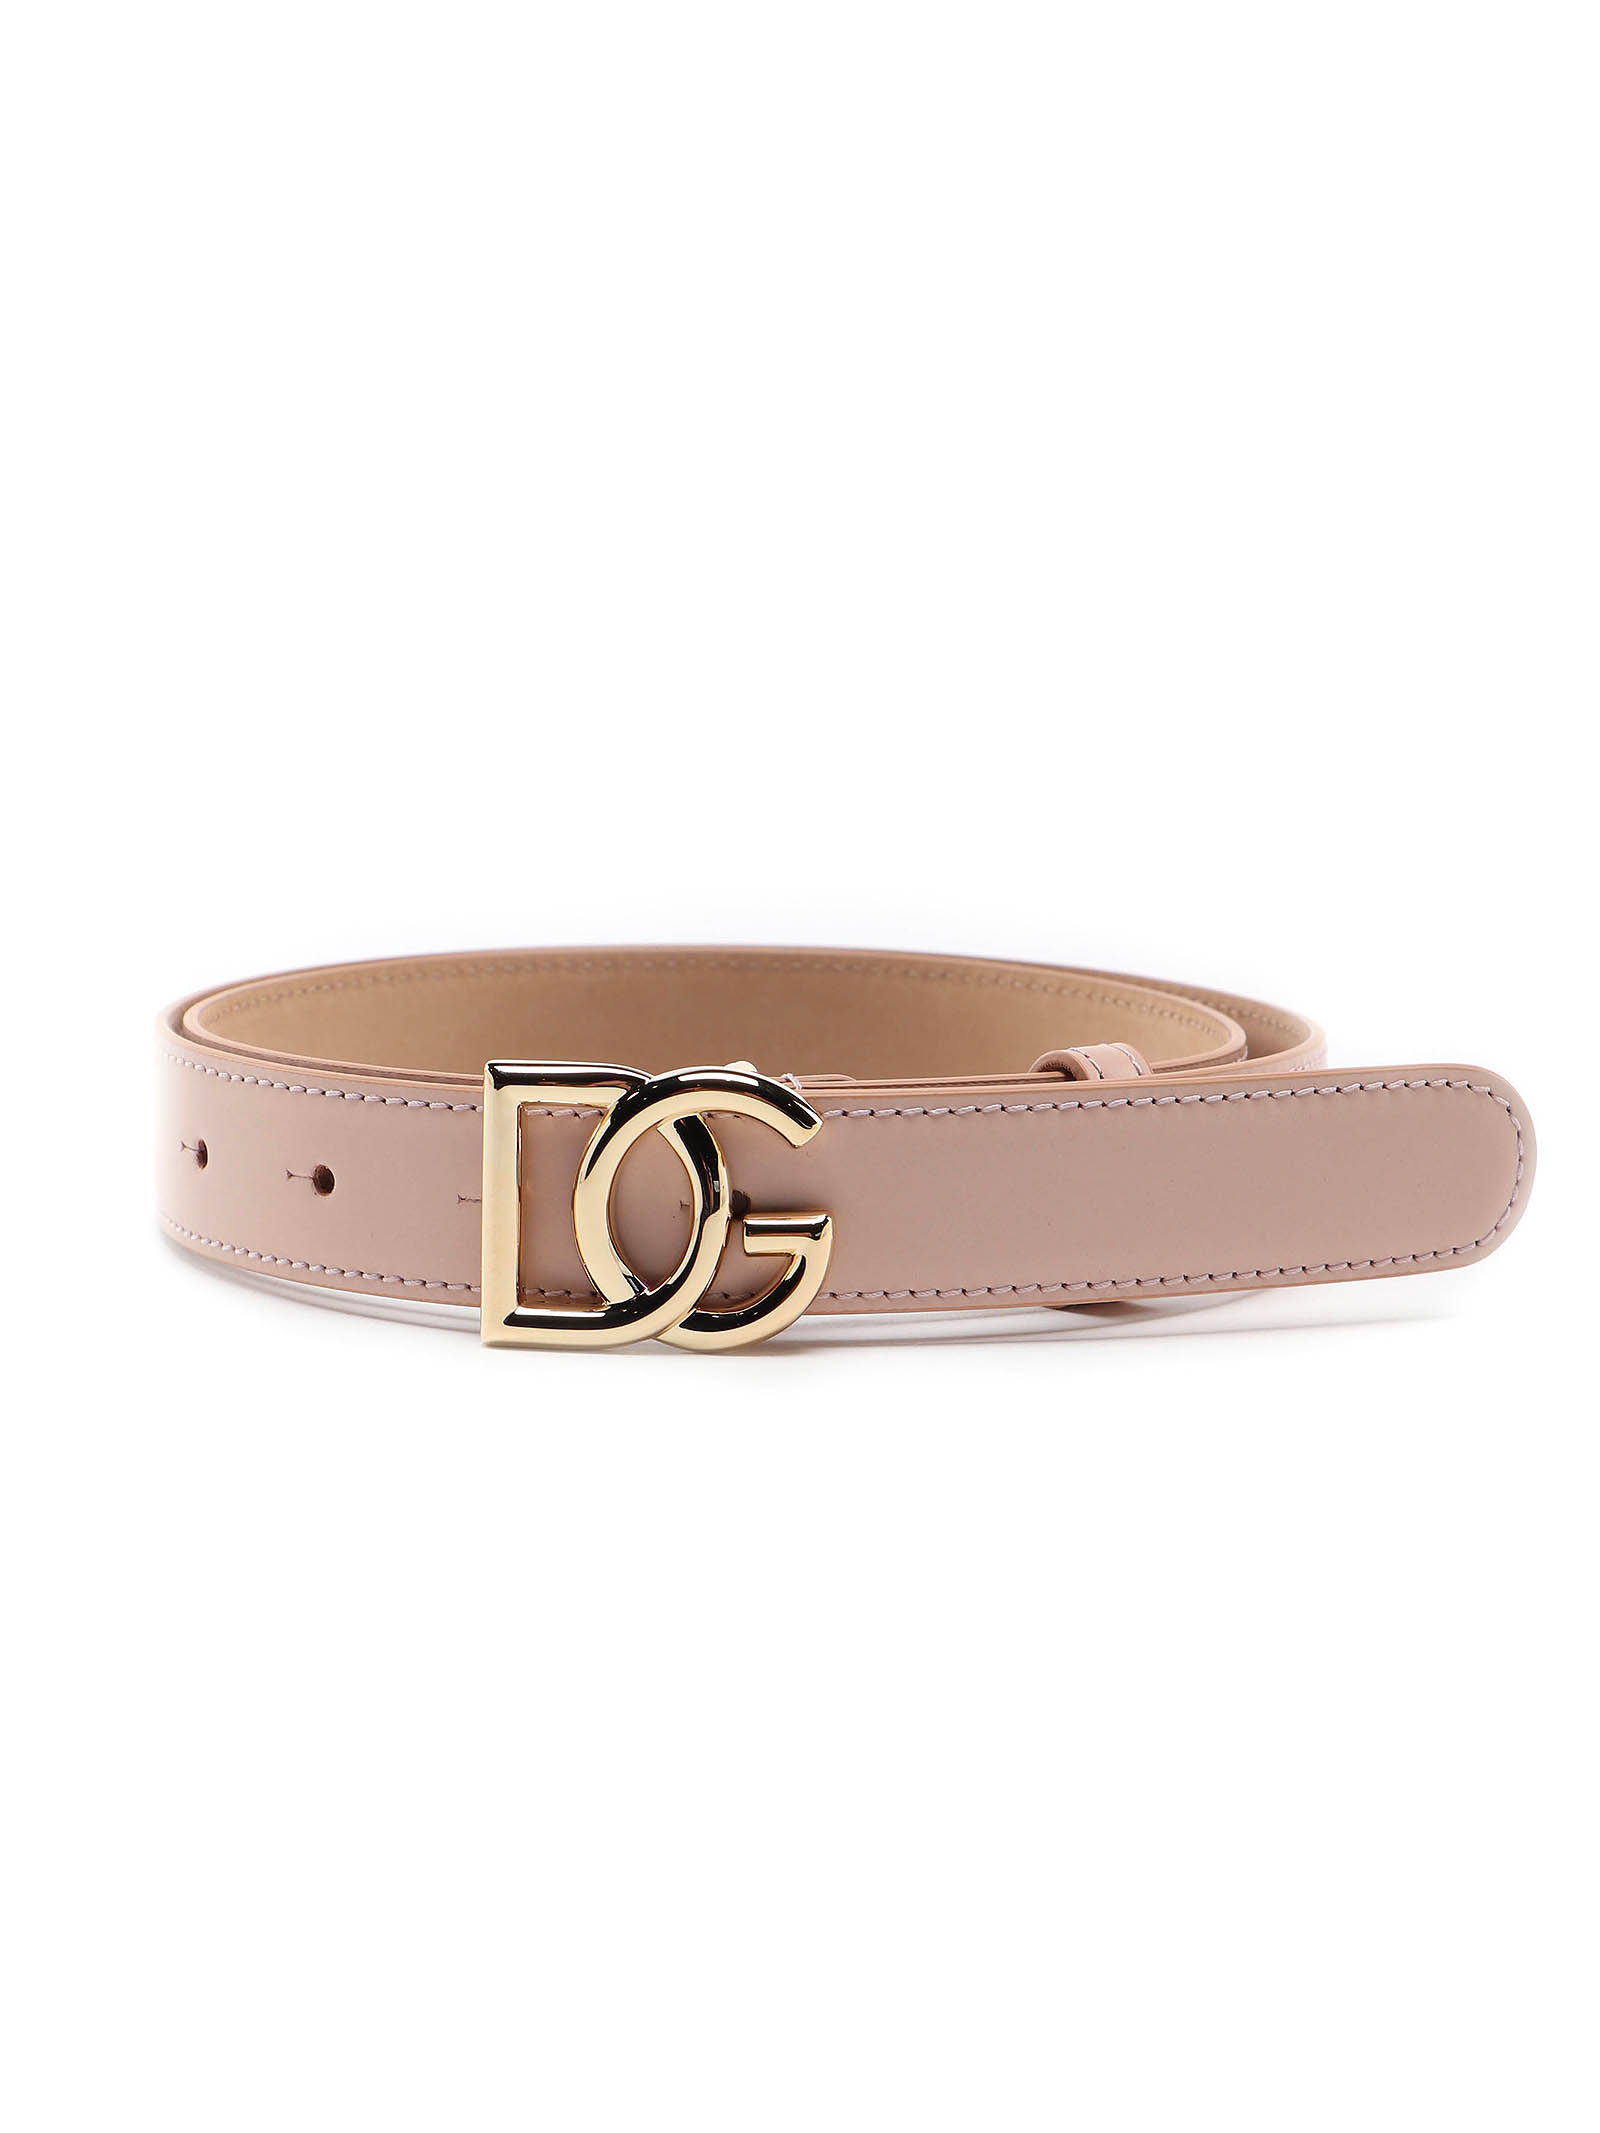 Picture of Dolce & Gabbana   Belt